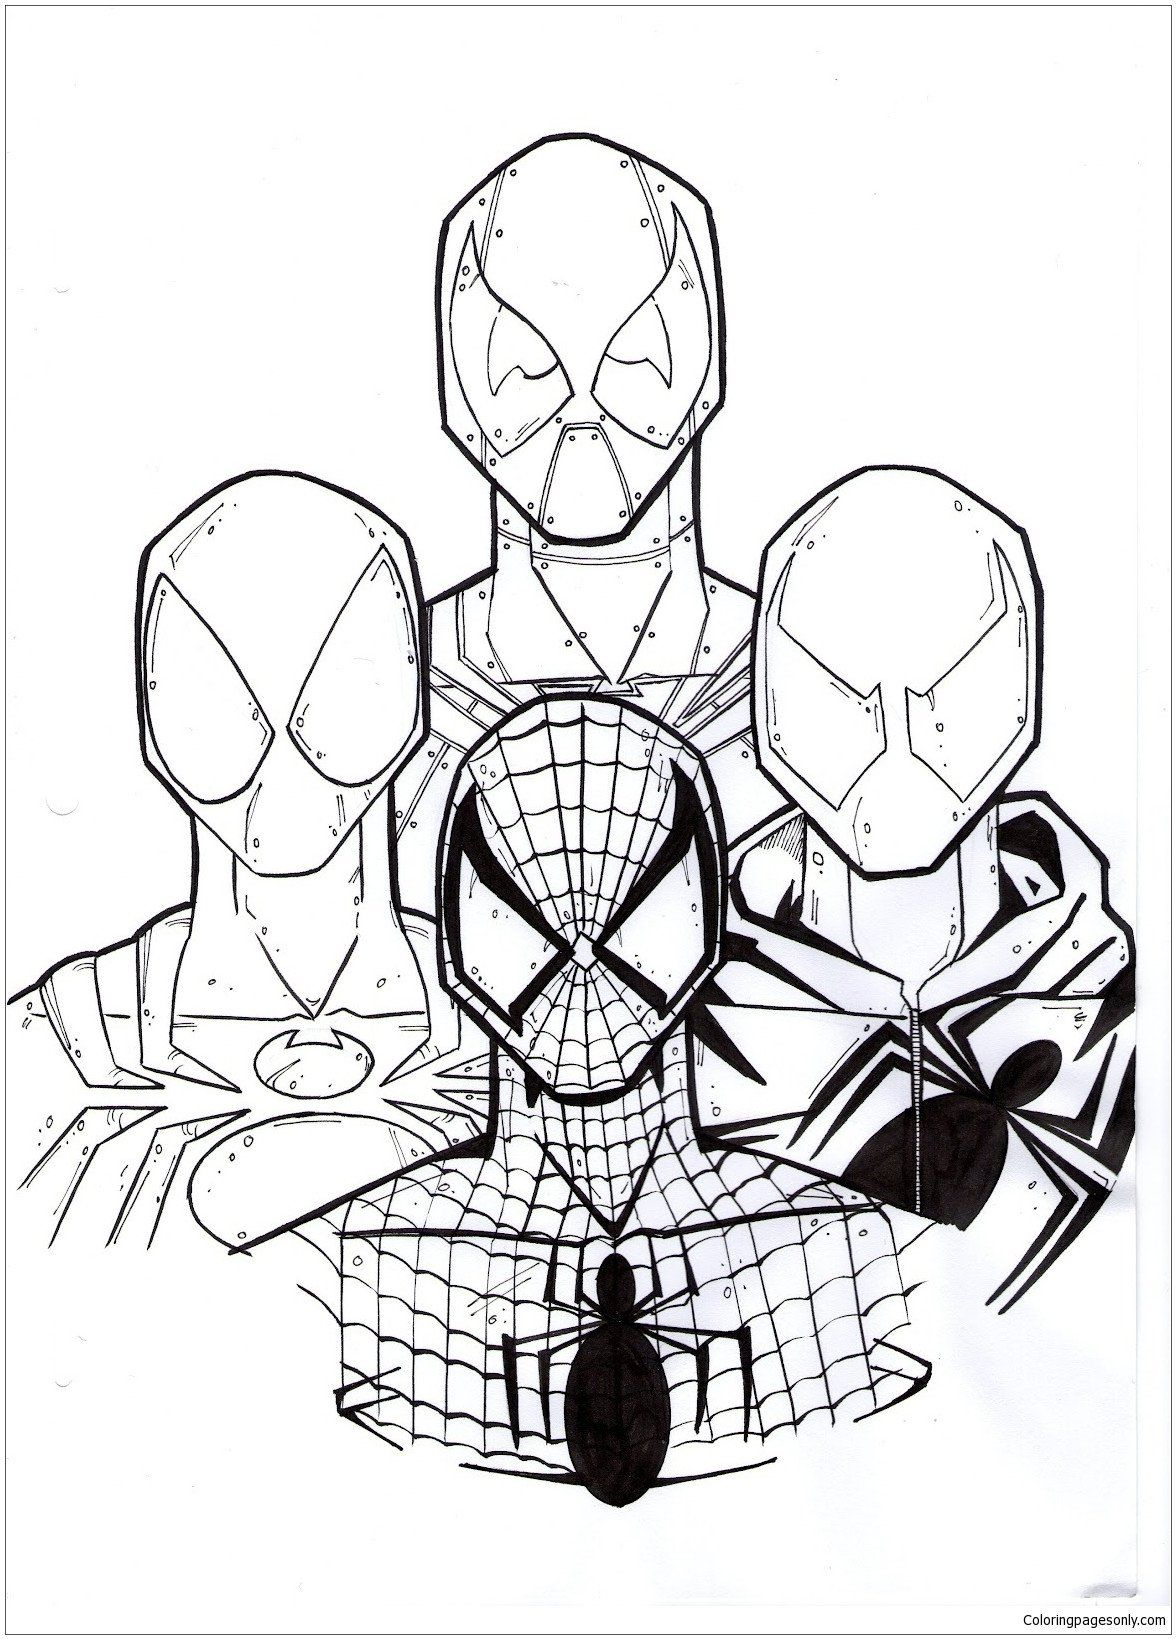 Lego Spiderman Coloring Pages Best Deadpool And Spiderman Coloring Page Free Coloring Bear Coloring Pages Spiderman Coloring Valentine Coloring Pages